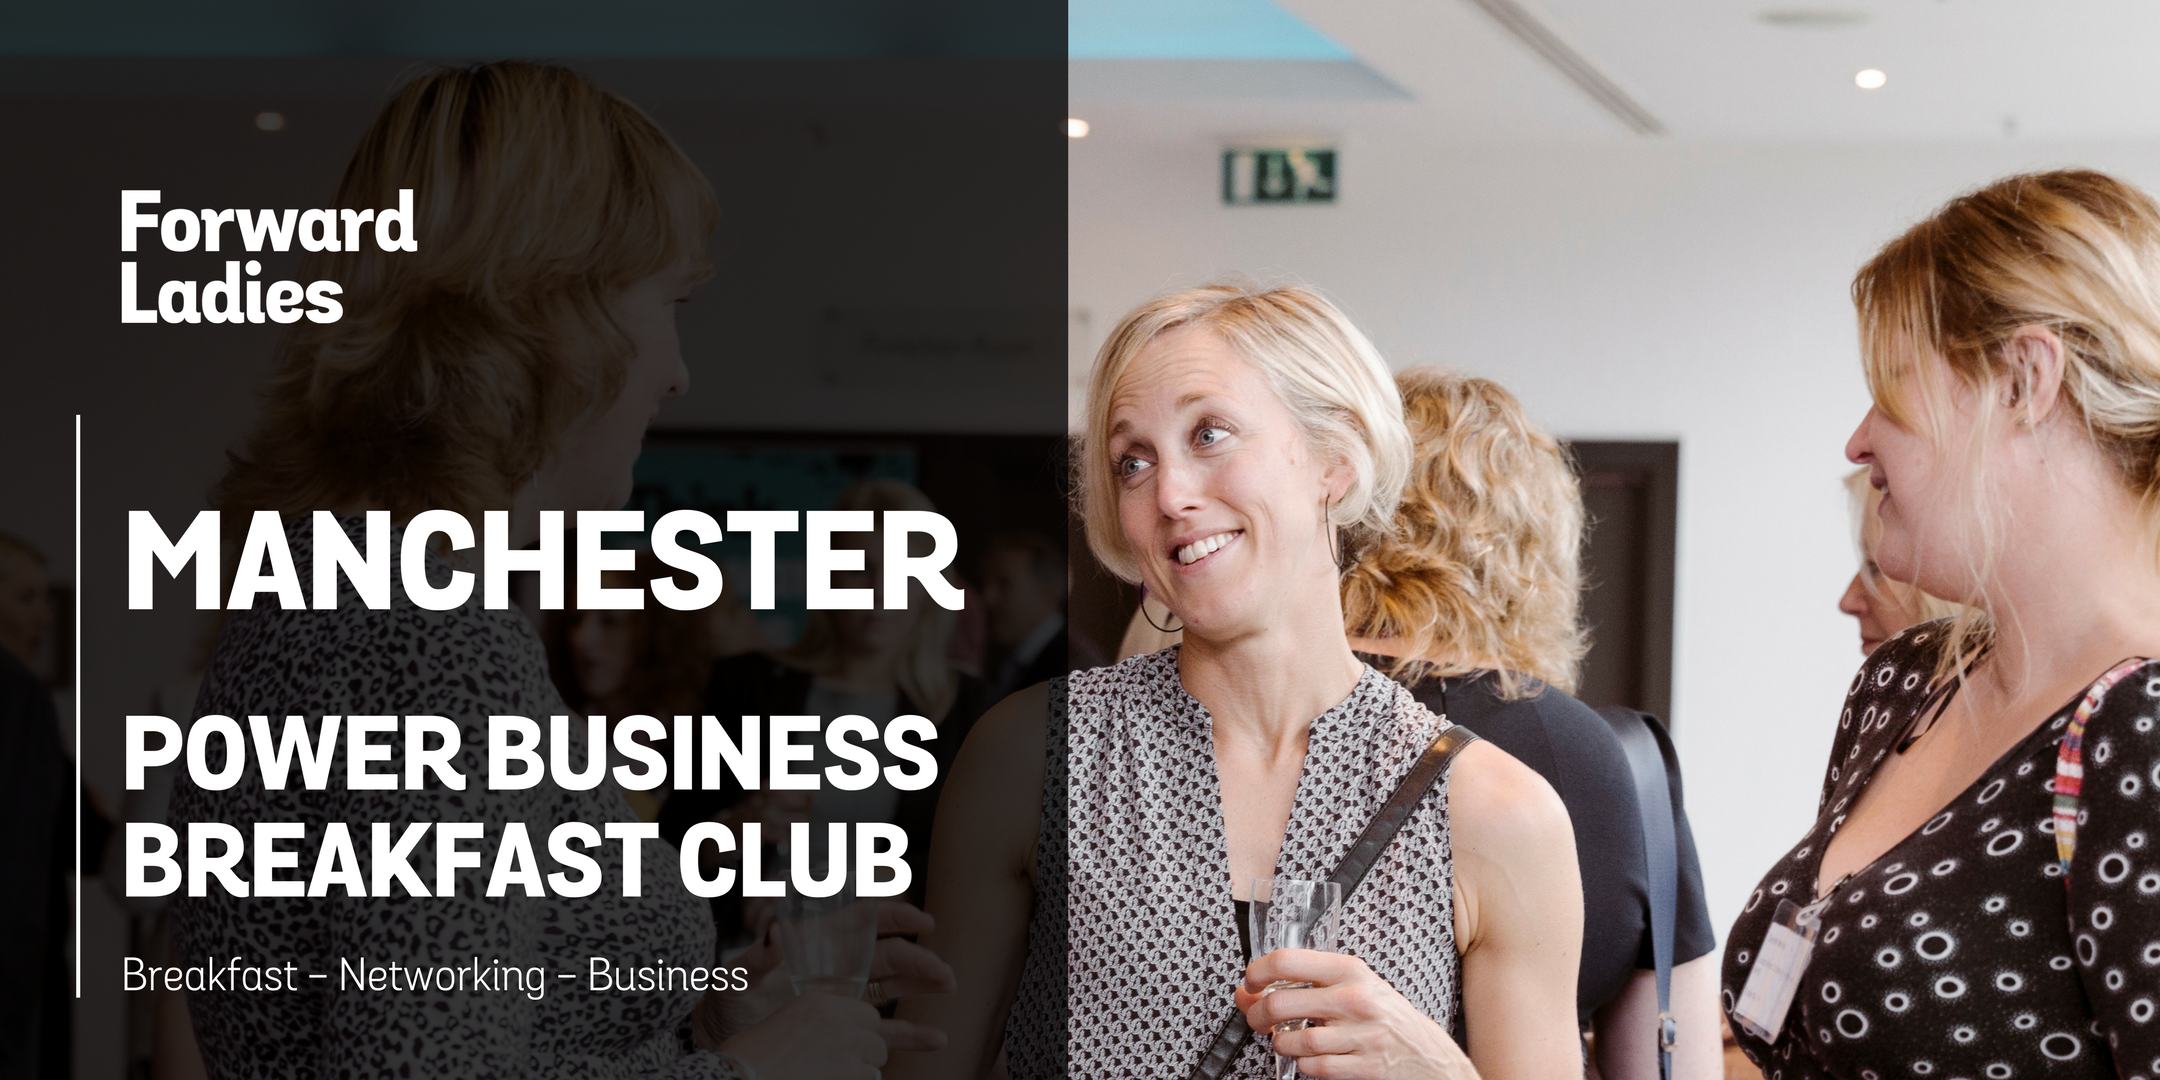 Want a free ticket to the UK's most prestigious women in business award? Here's your chance!